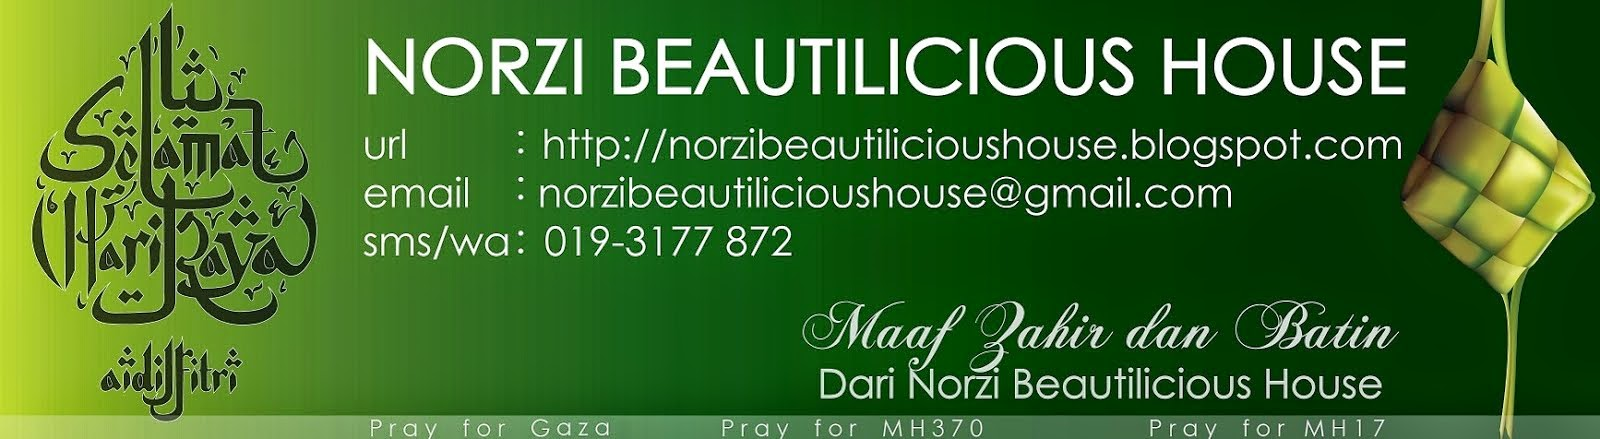 Norzi Beautilicious House